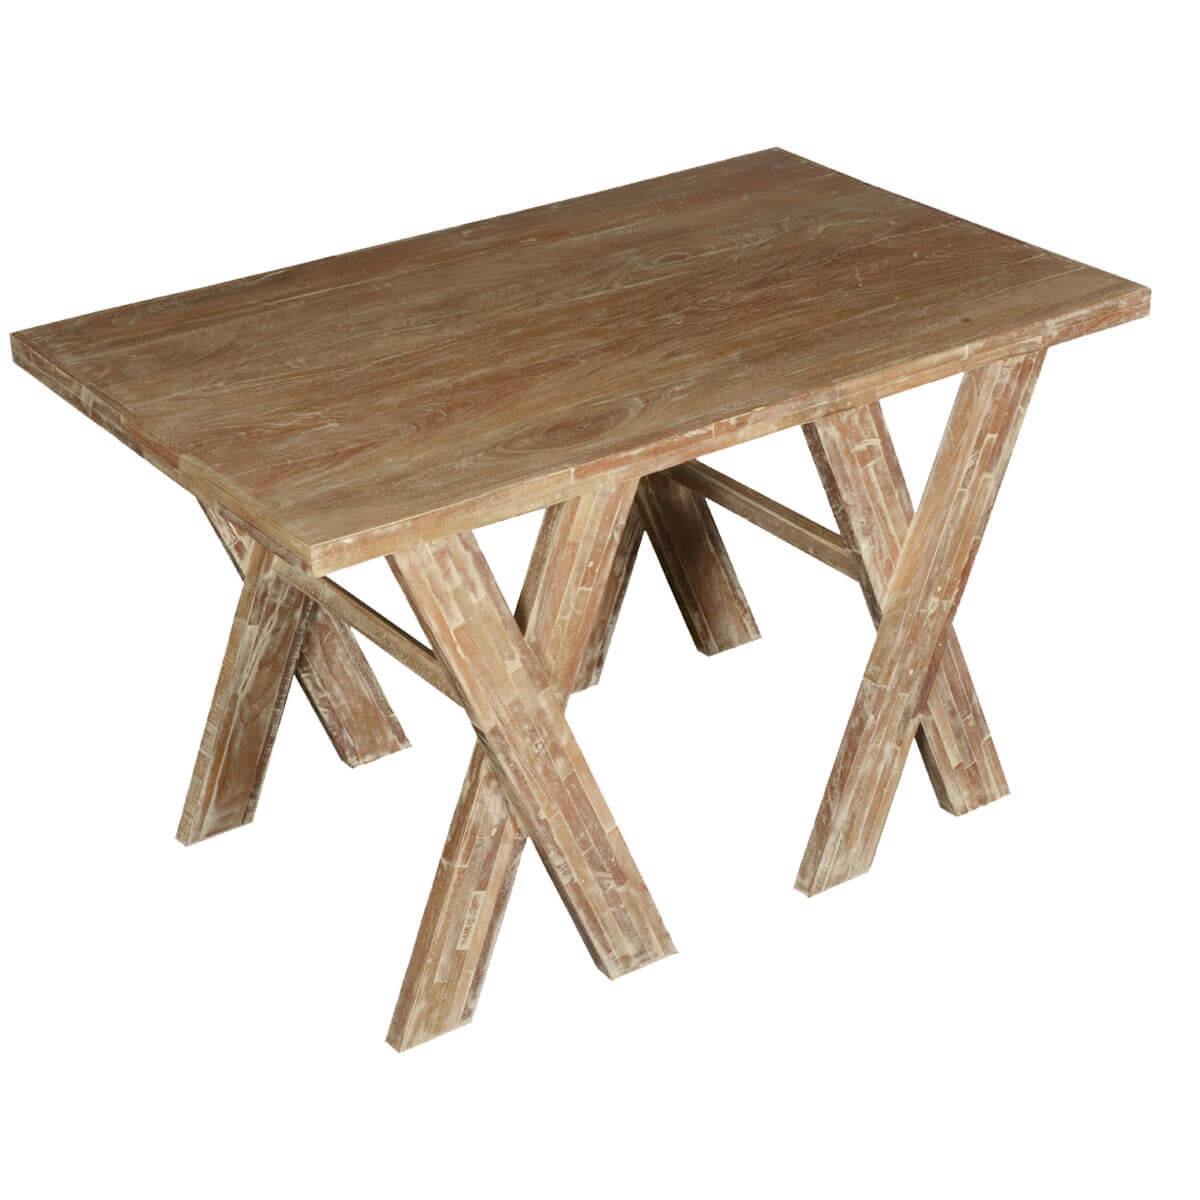 double x acacia mango wood picnic style rustic dining table. Black Bedroom Furniture Sets. Home Design Ideas